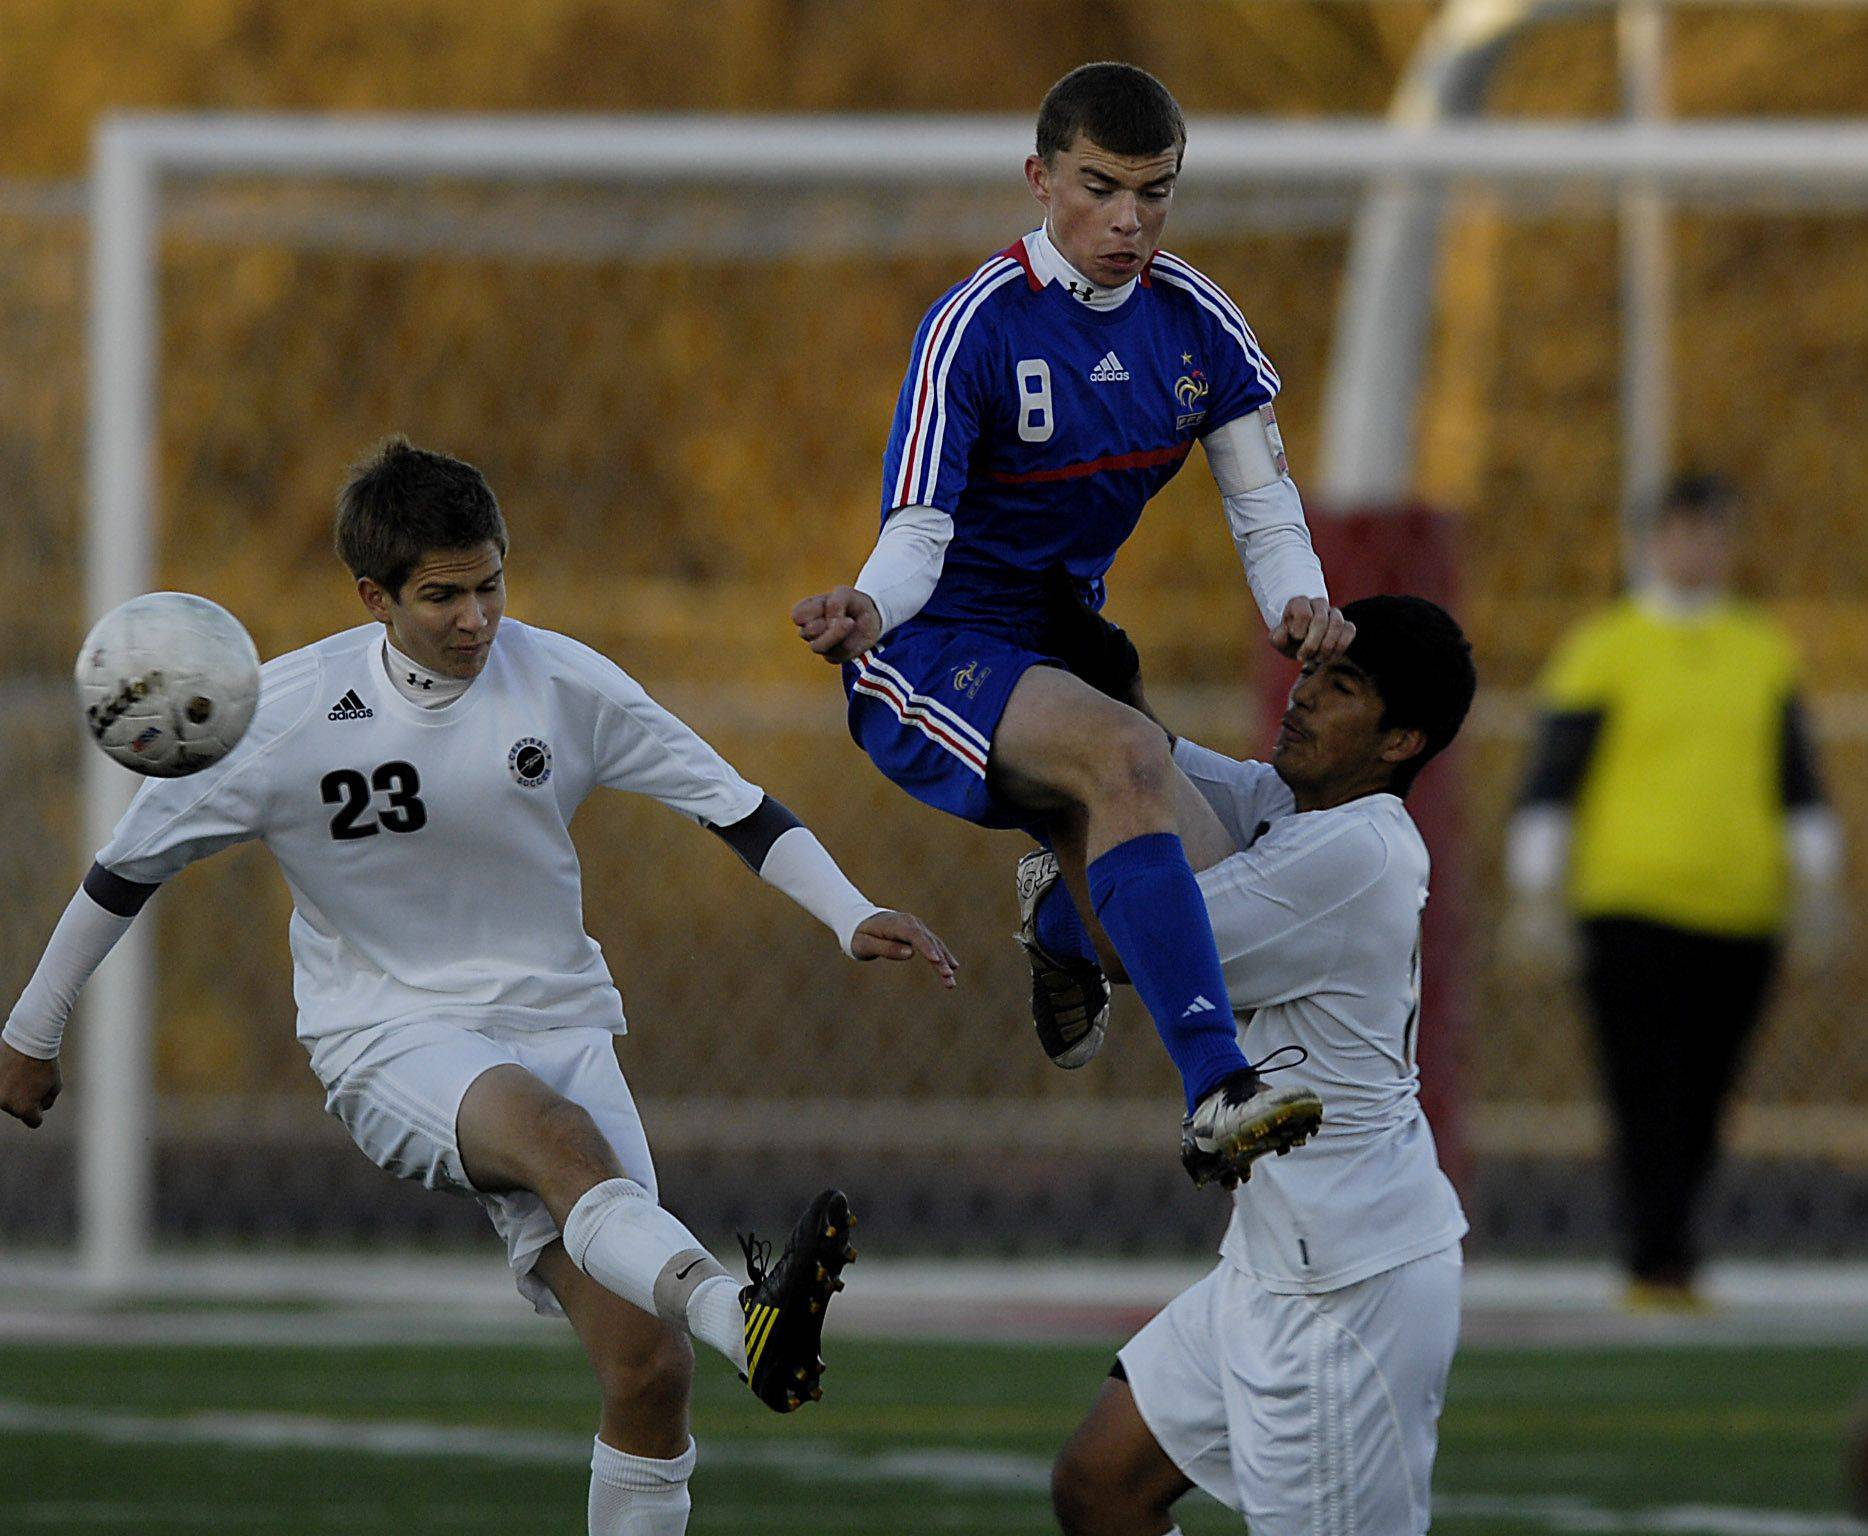 Lakes' Matt Dexheimer leaps between Burlington Central's Grant Stoneman and Alejandro Nava, right, in the Class 2A supersectional game in Barrington Tuesday night.